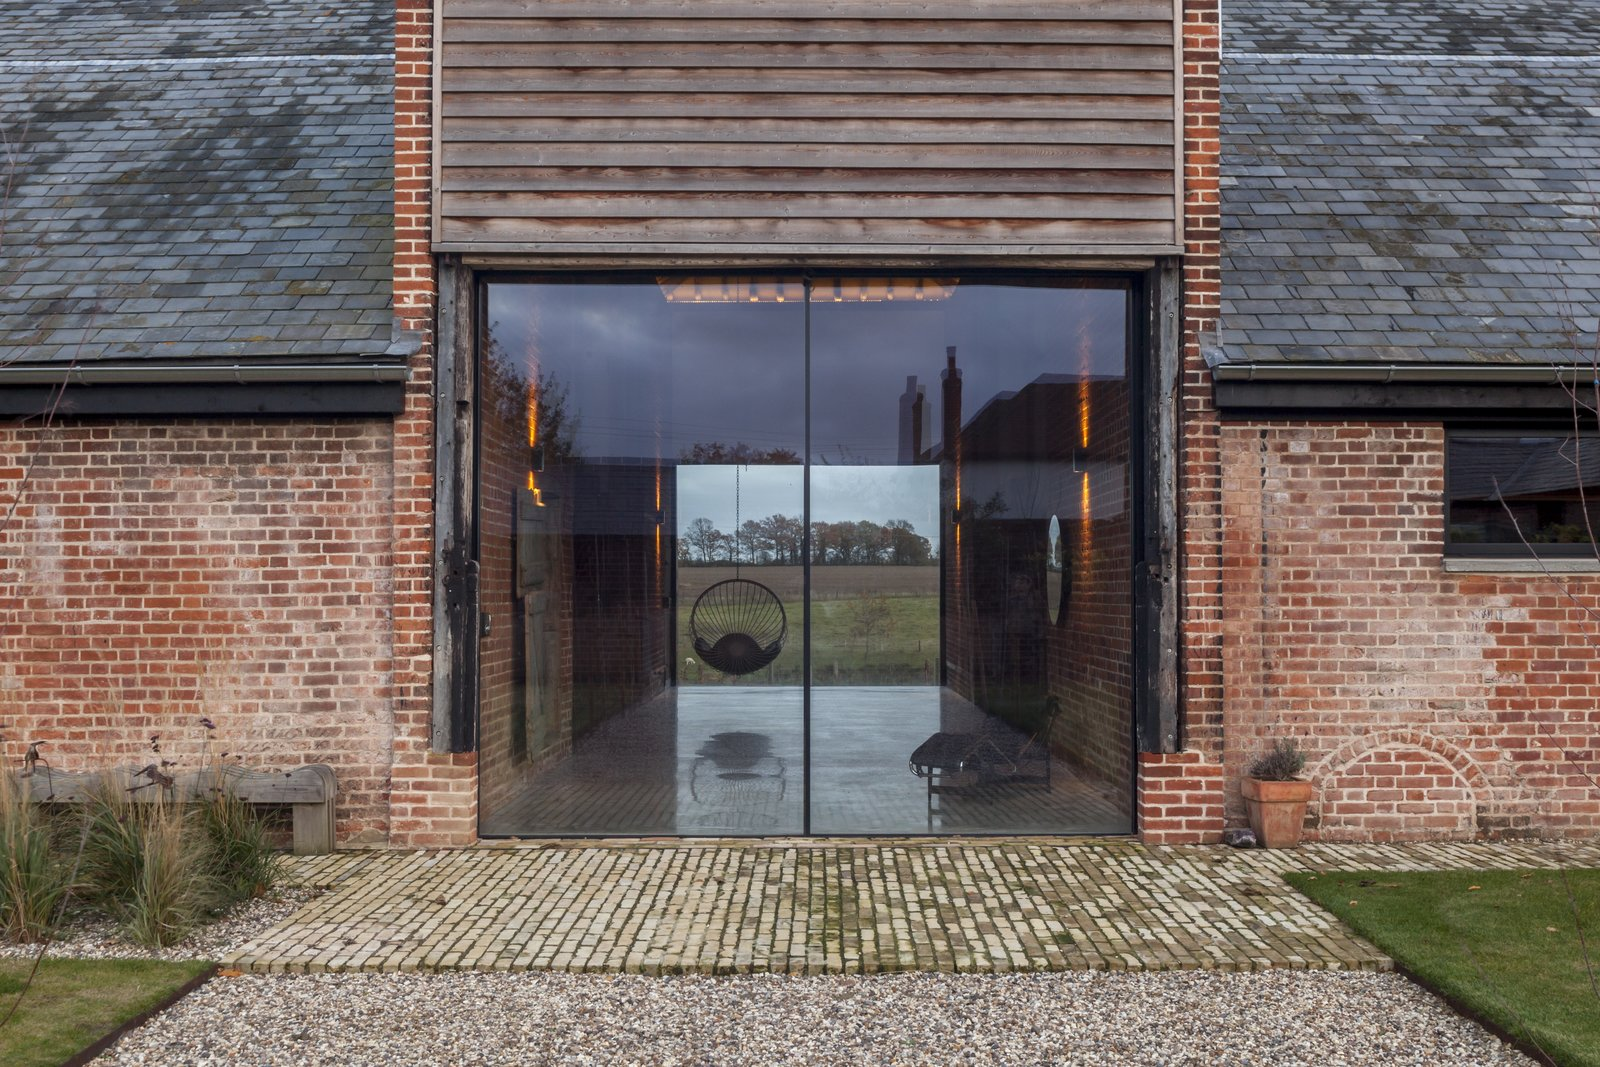 Hallway Two oversized glazed sliding doors welcome guests into Church Hill Barn.  Photo 2 of 10 in This Converted Barn in the English Countryside Stays True to its Historic Roots